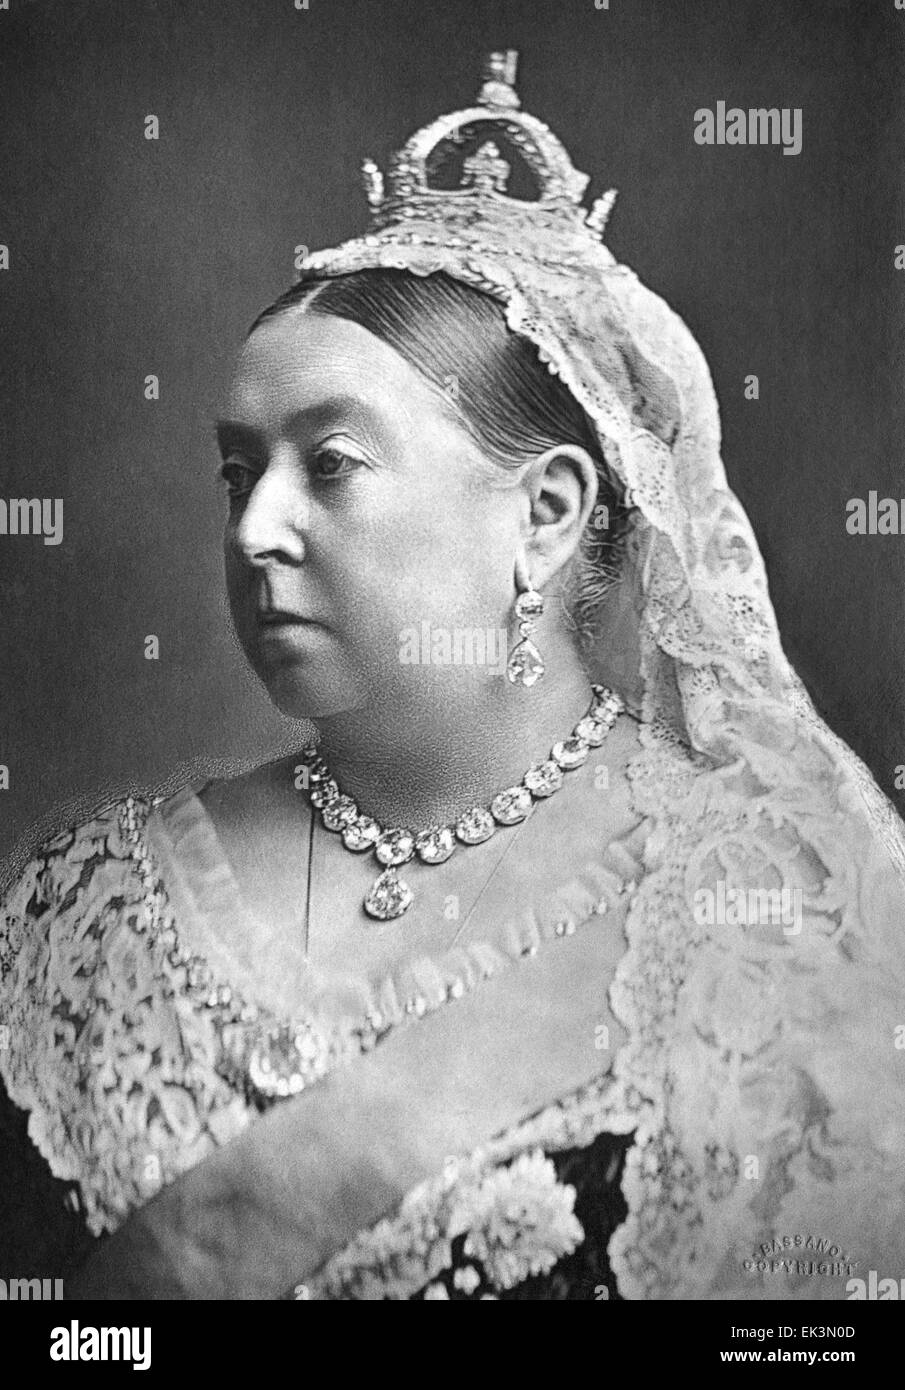 Queen Victoria, of the United Kingdom, Portrait 1882 - Stock Image